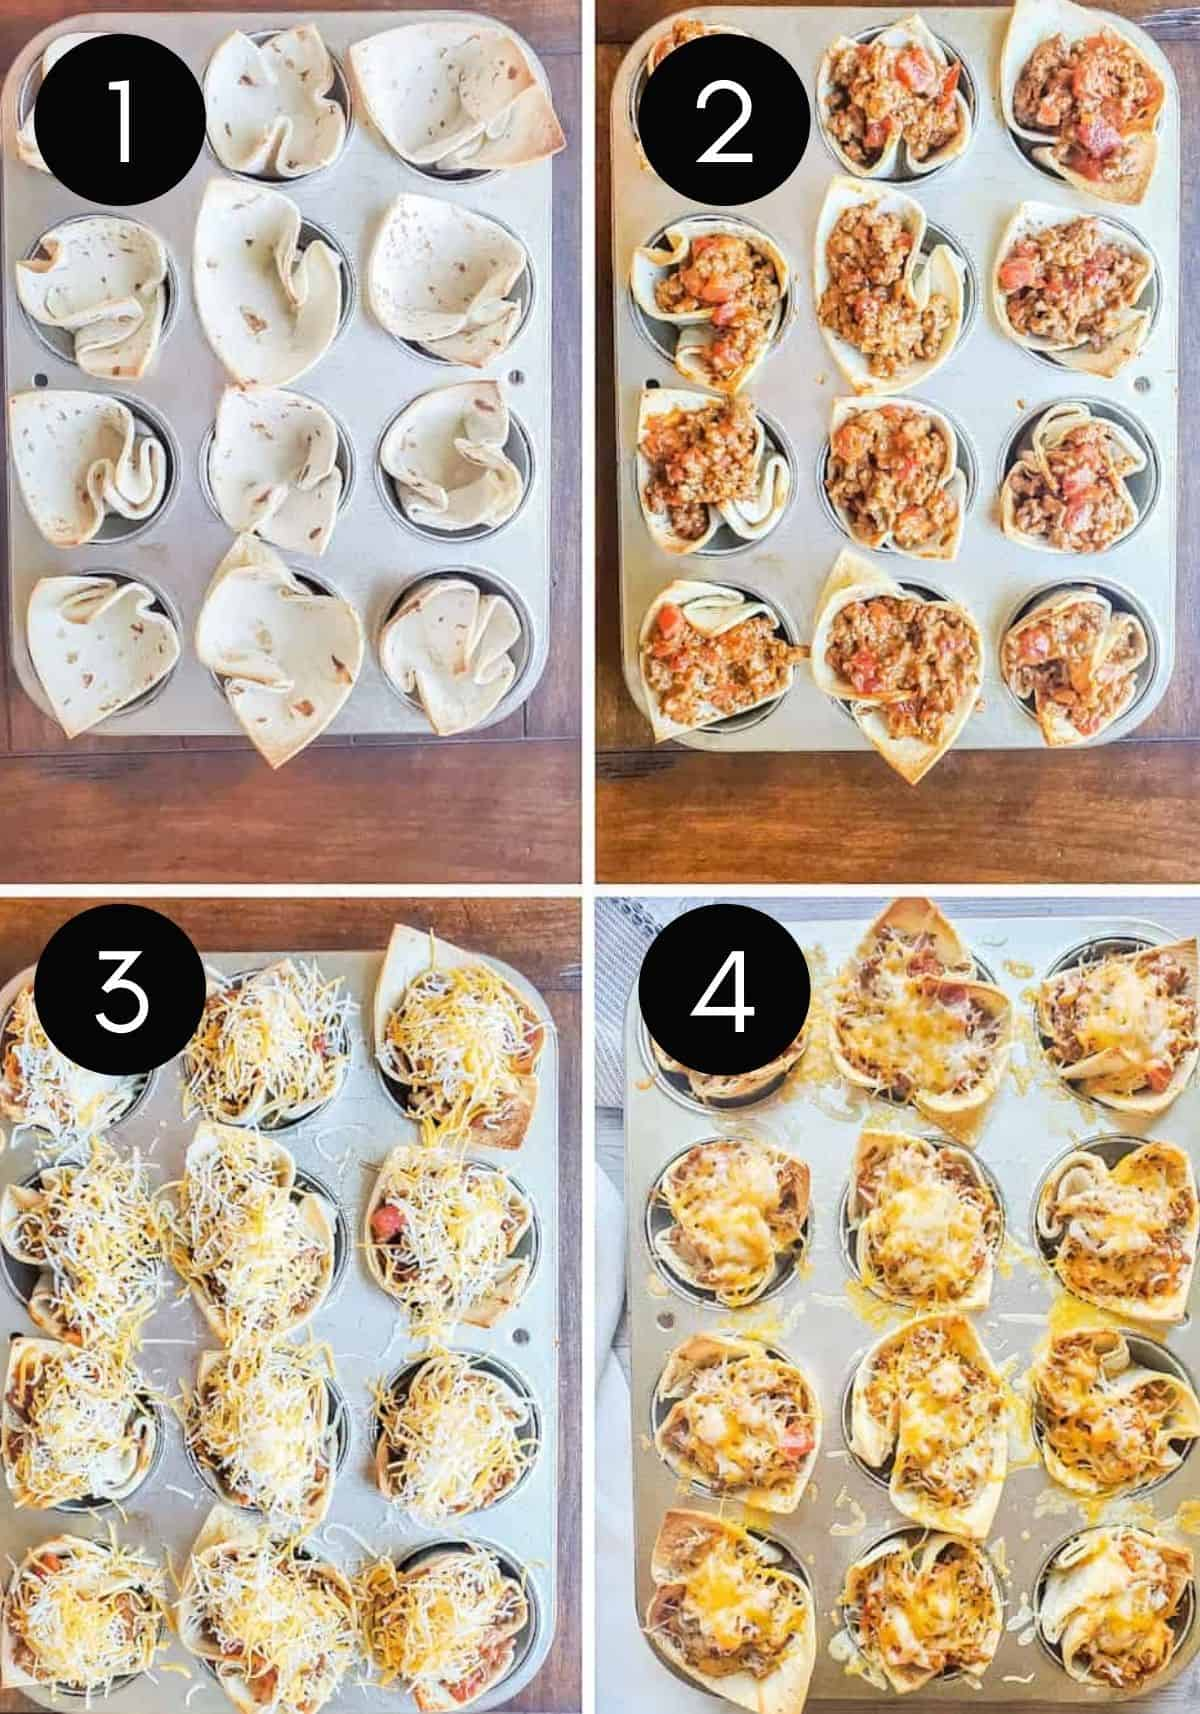 Four prep images showing taco bites being prepared in muffin tin with numbered photos.